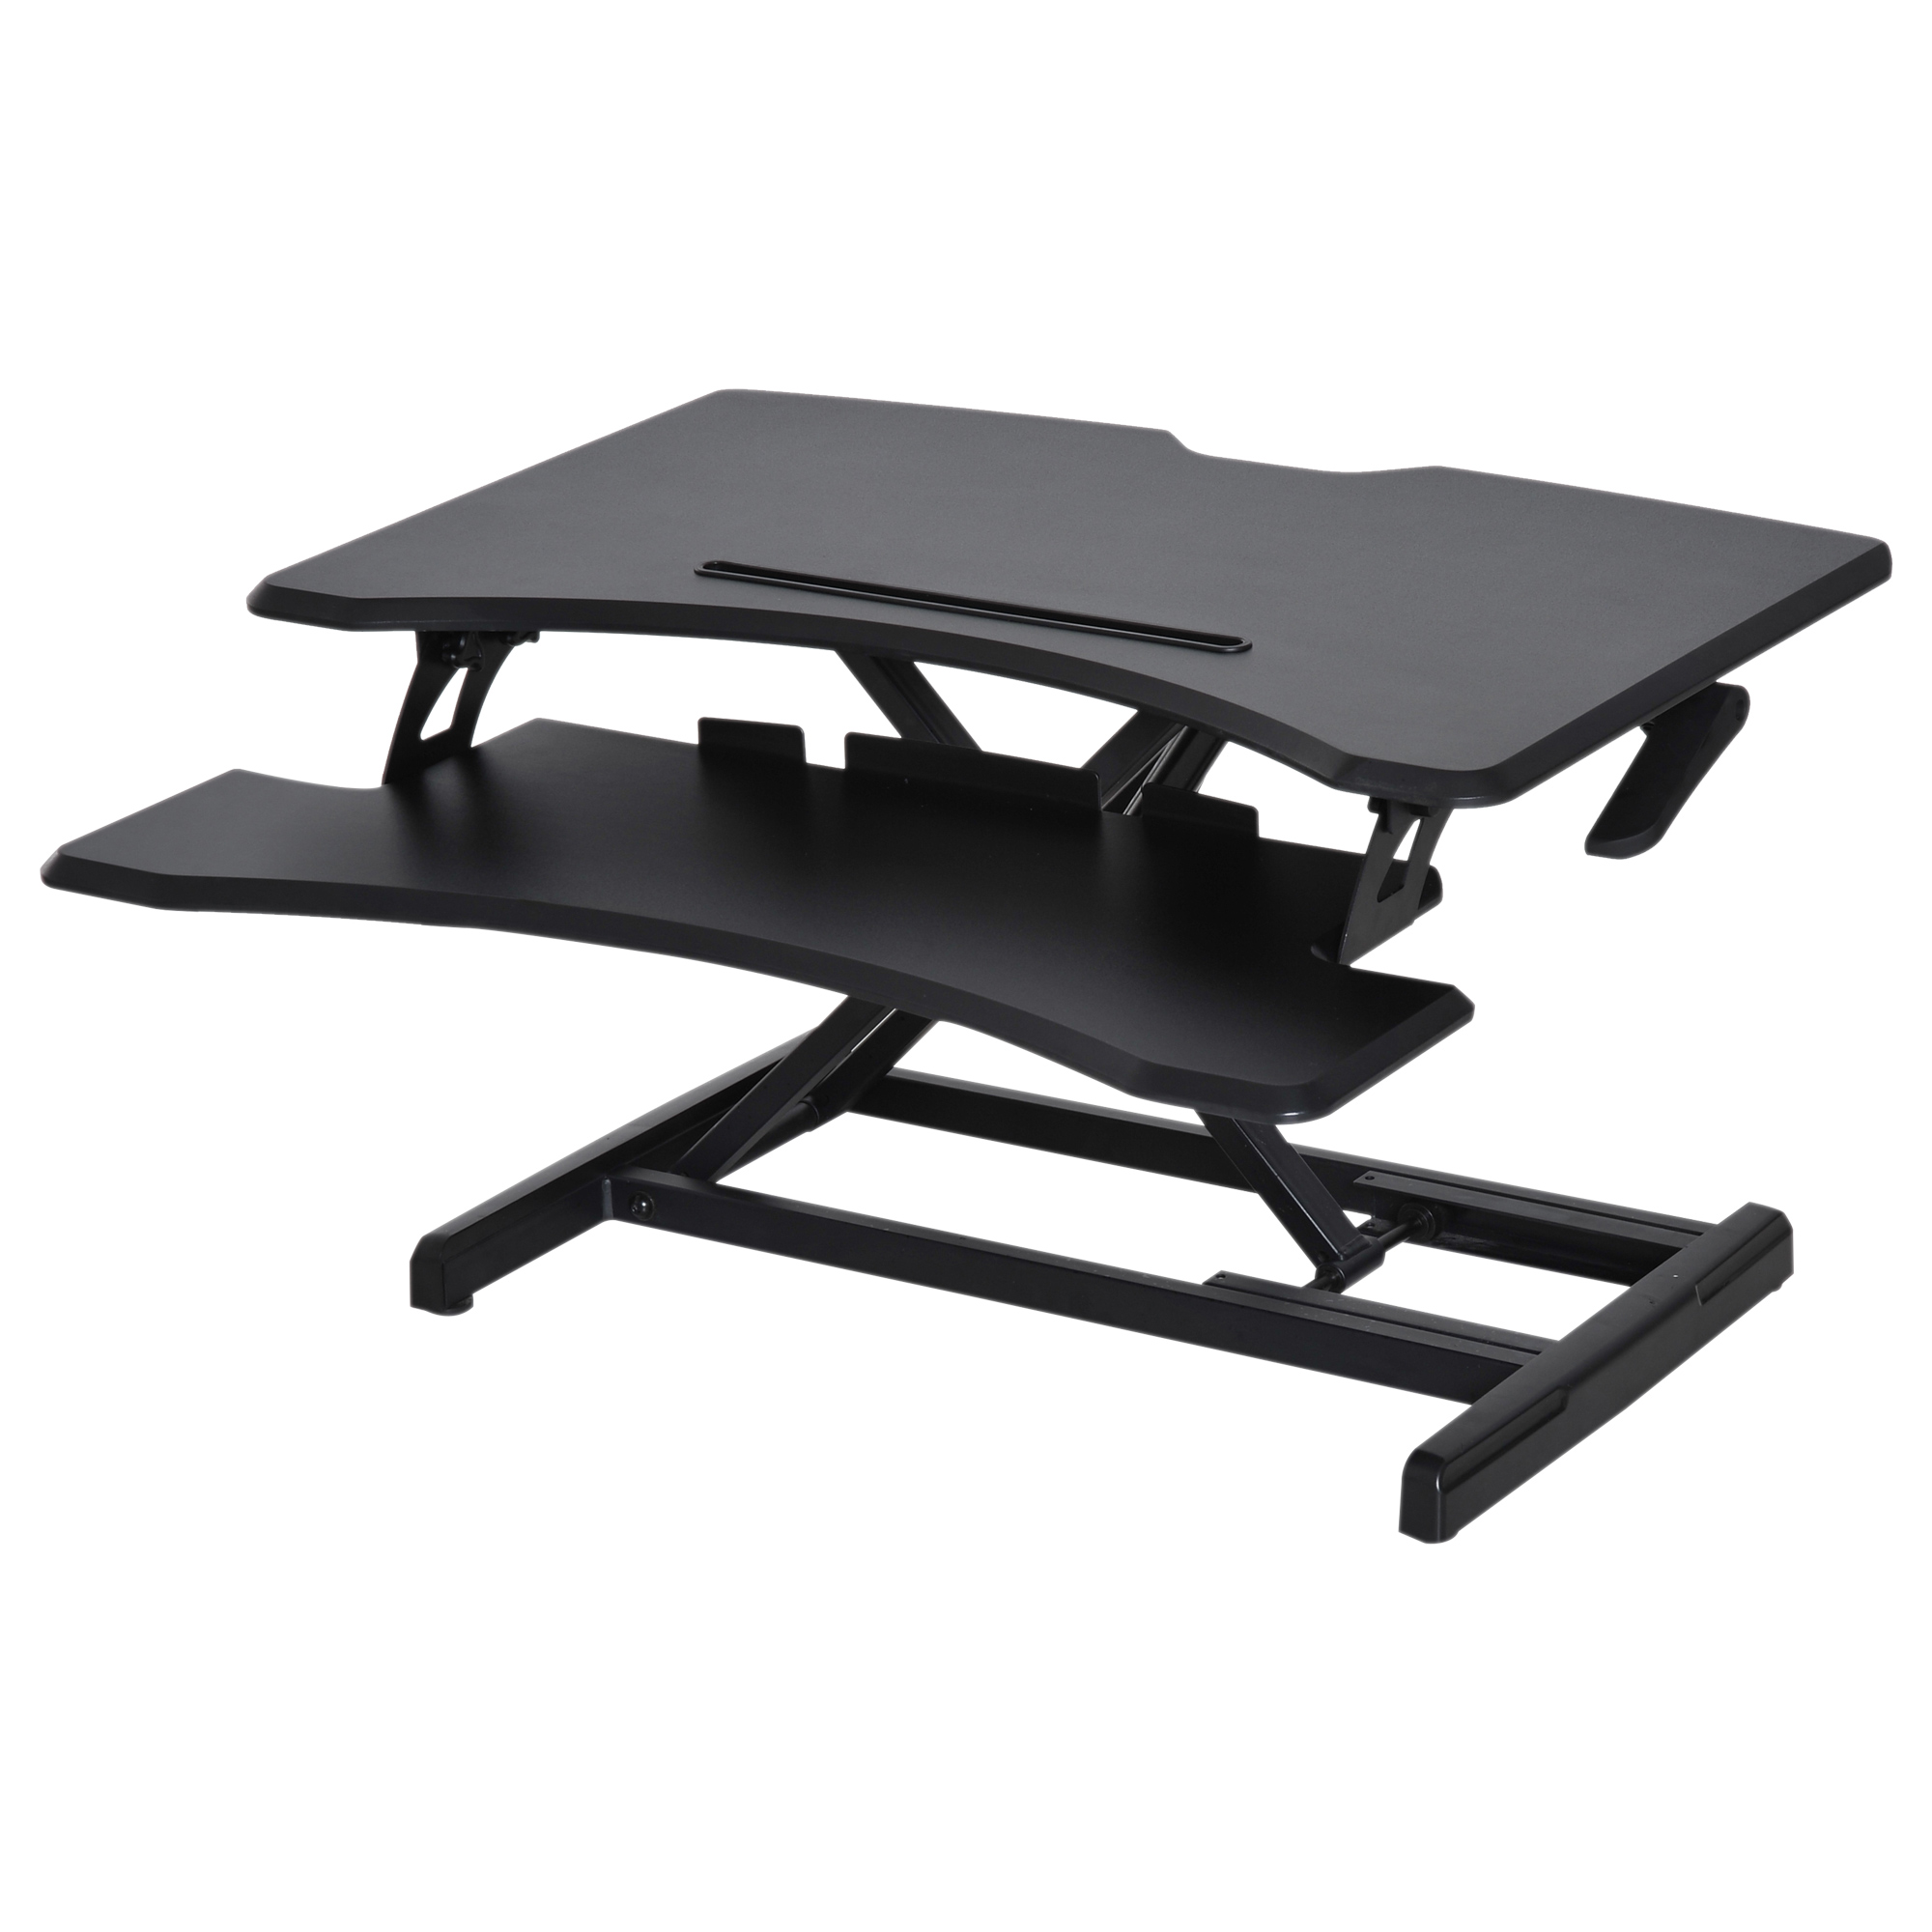 Image of CAD $179.99 Vinsetto Height Adjustable Standing Desk Tabletop Workstation Black / Sit Stand Converter Gas Lifting Riser Elevated to Canada 95509805768